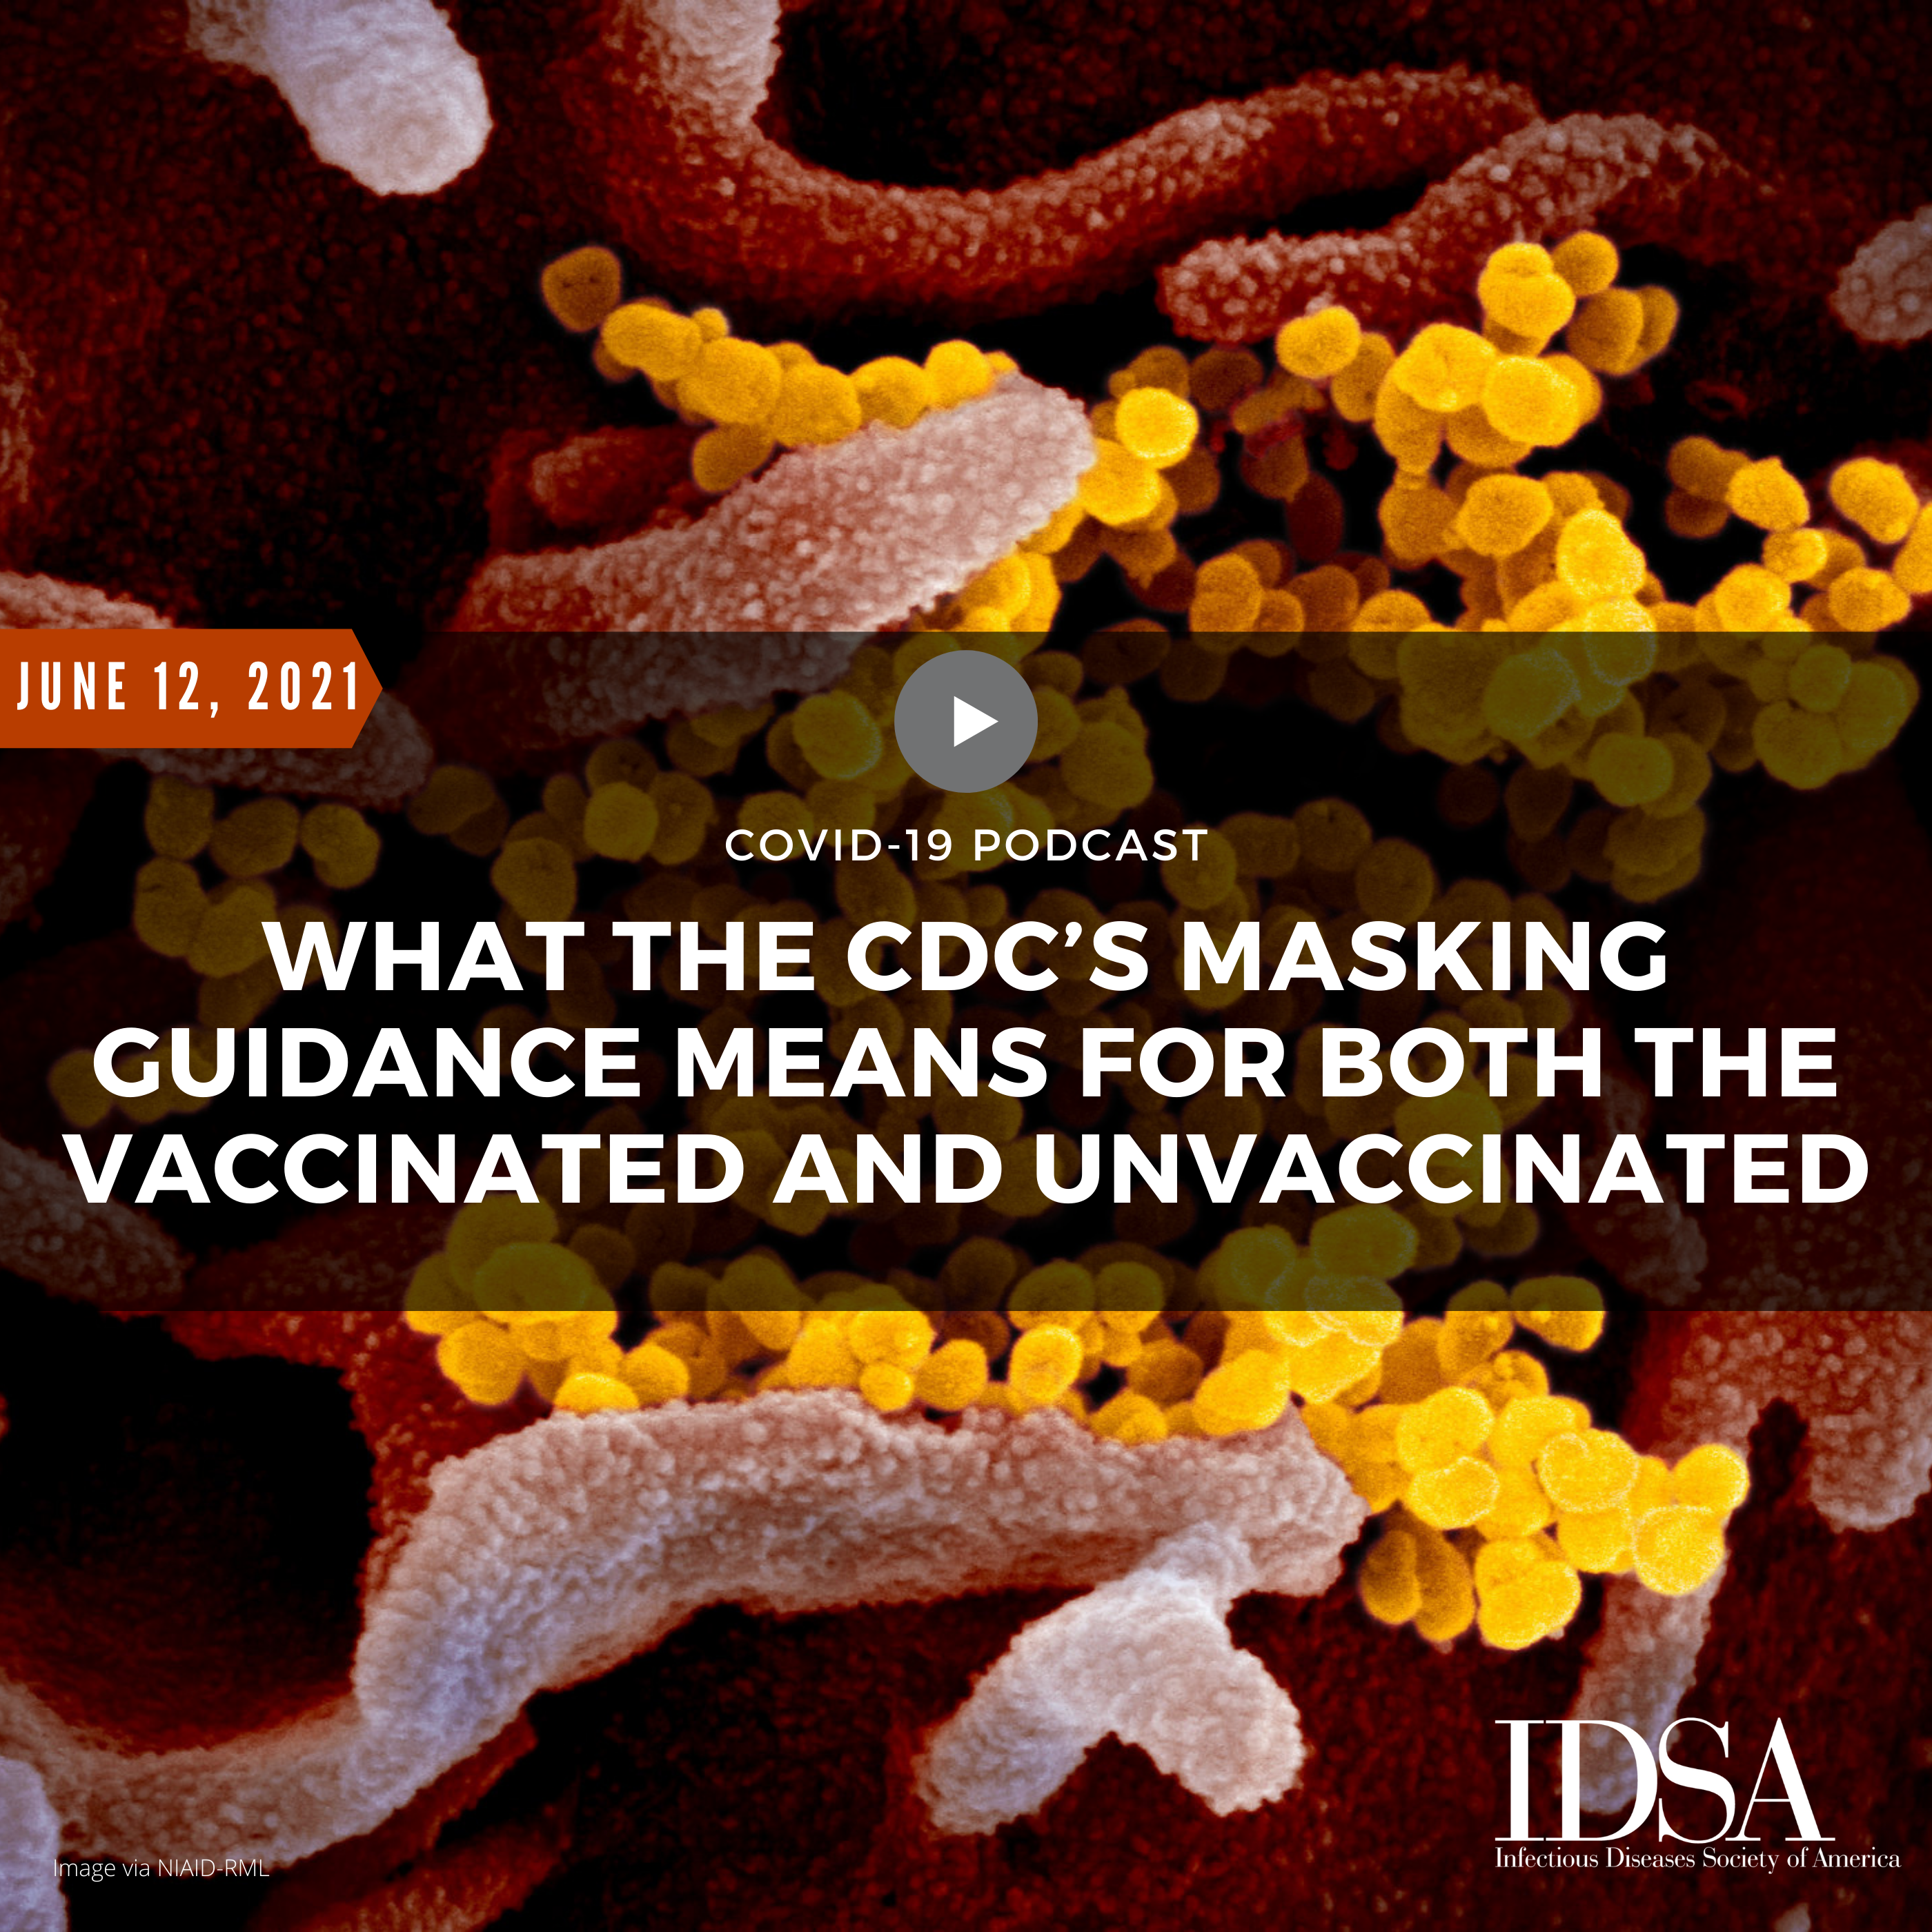 What the CDC's Masking Guidance Means for Both the Vaccinated and Unvaccinated (June 12, 2021)